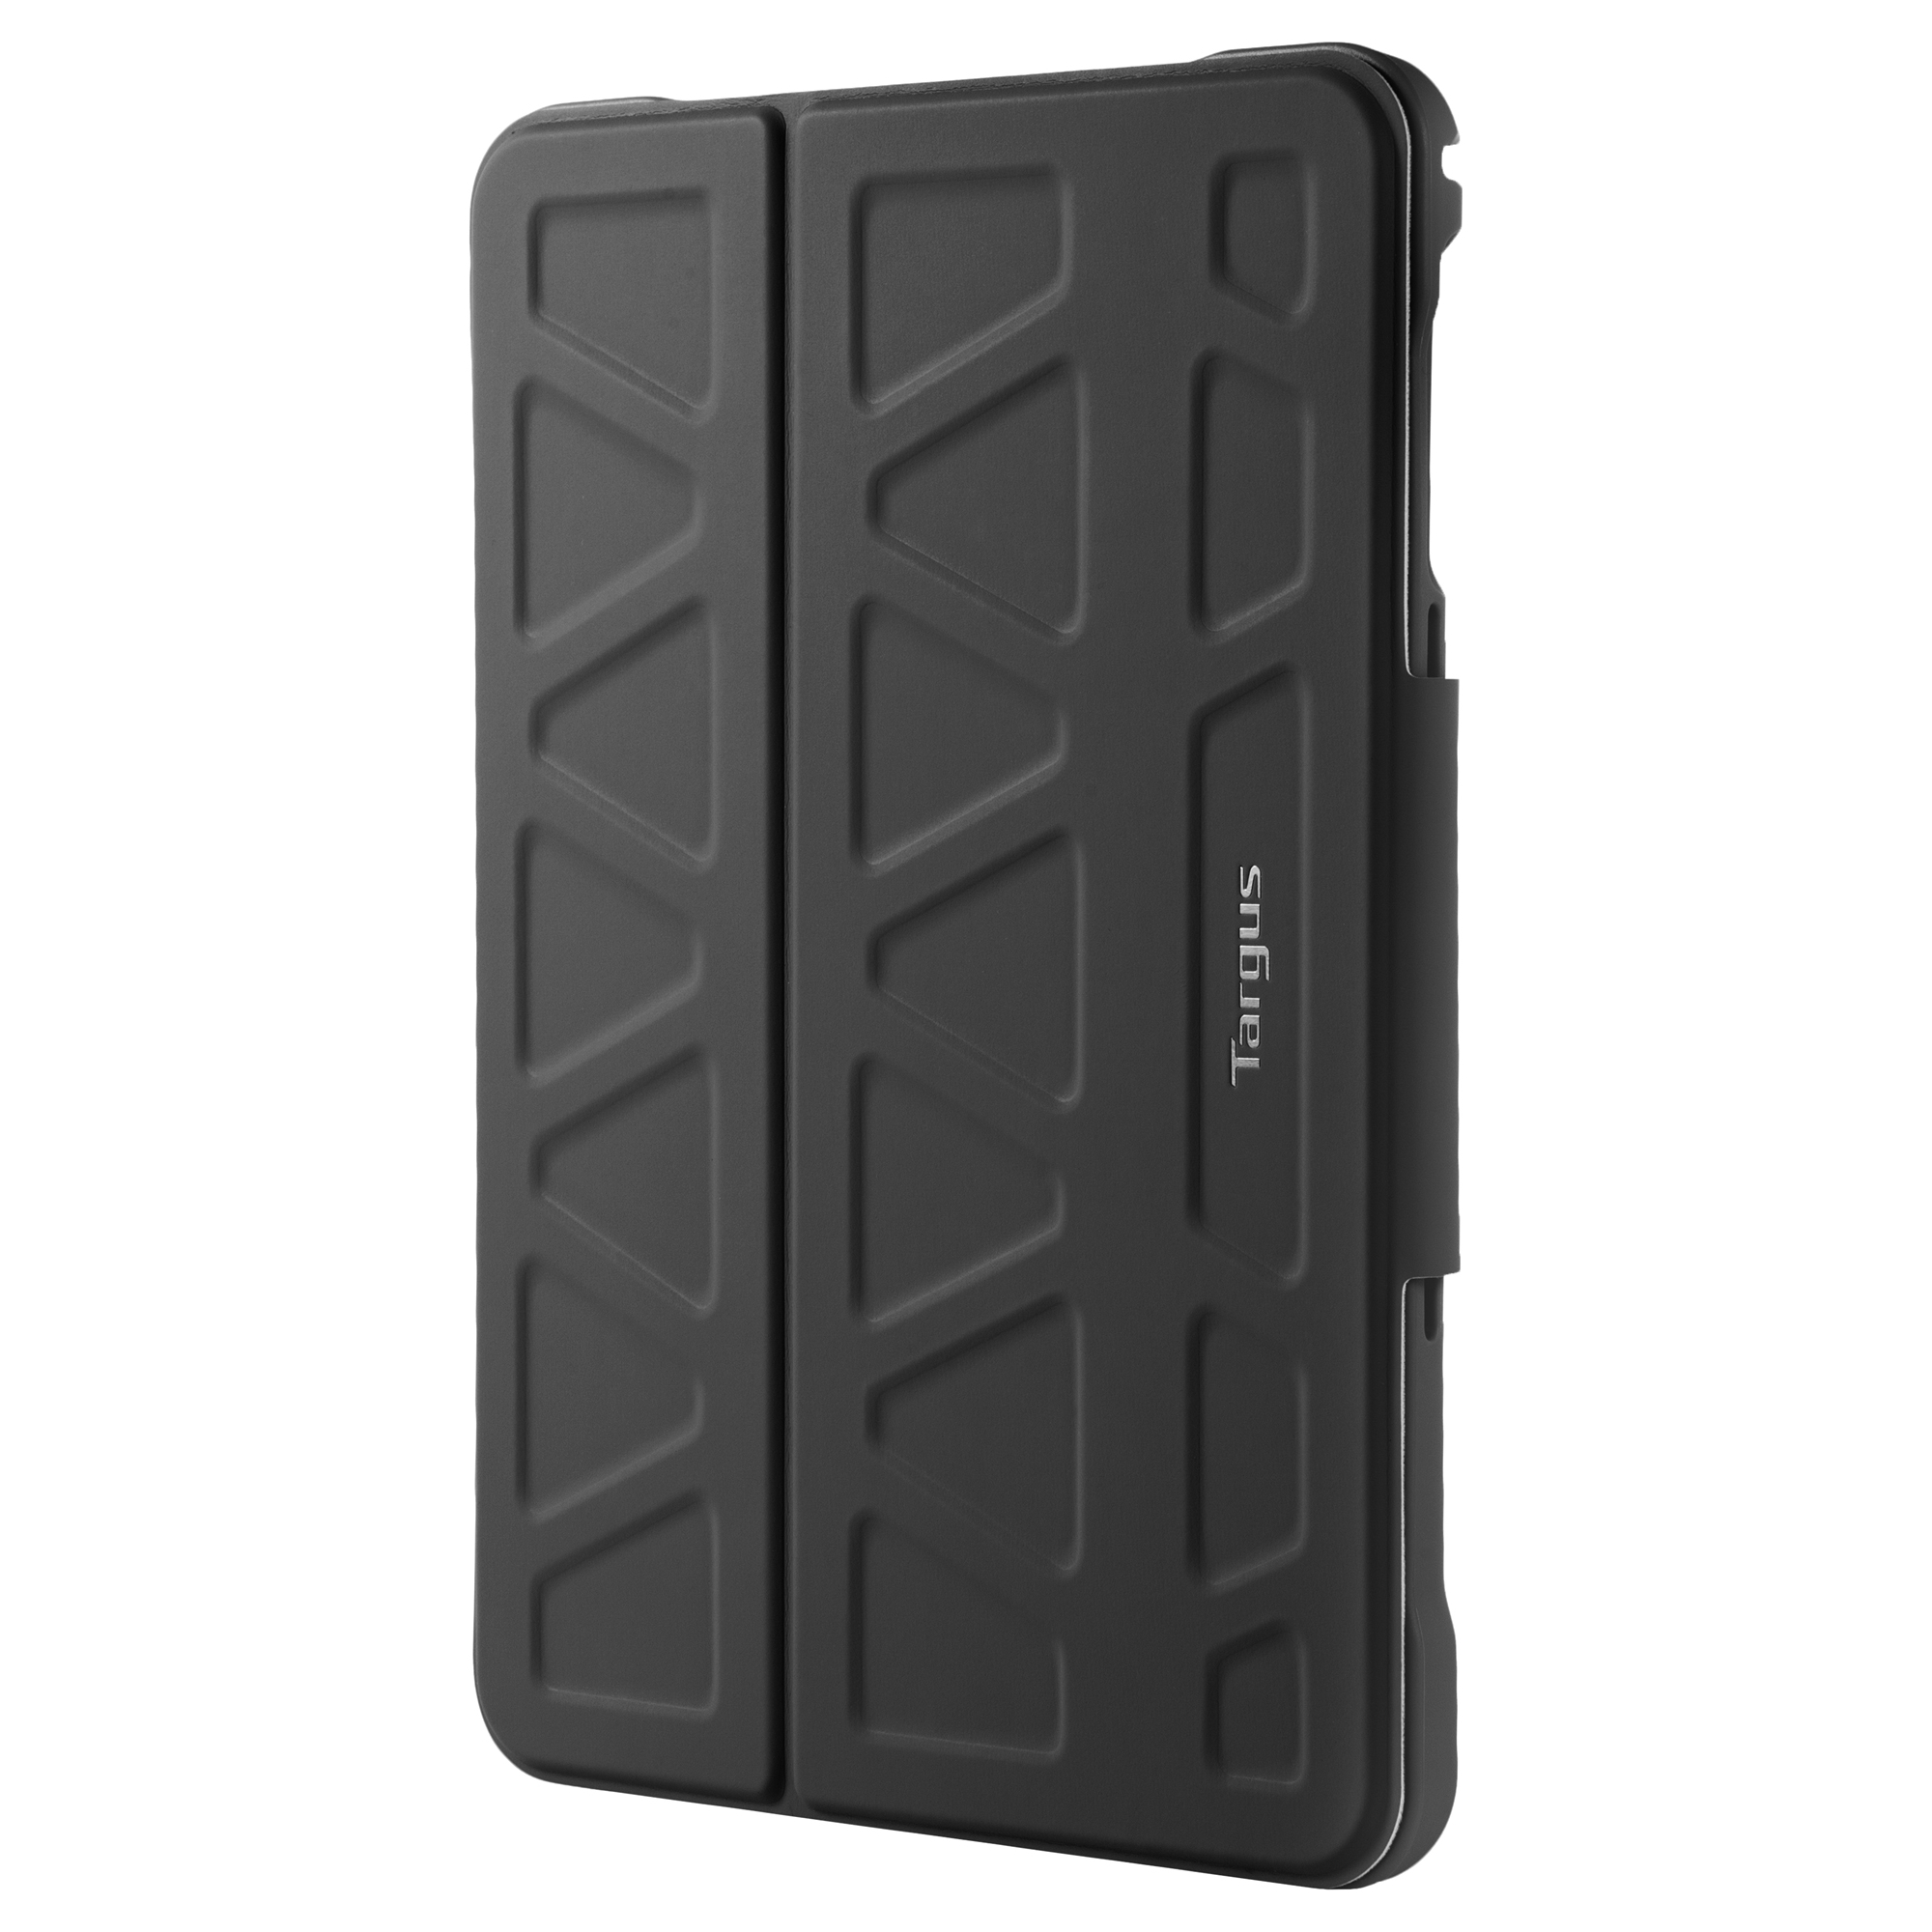 3D Protection Case - Flip cover for tablet - rugged - polyurethane - black - for Apple iPad mini iPad mini 2 3 4